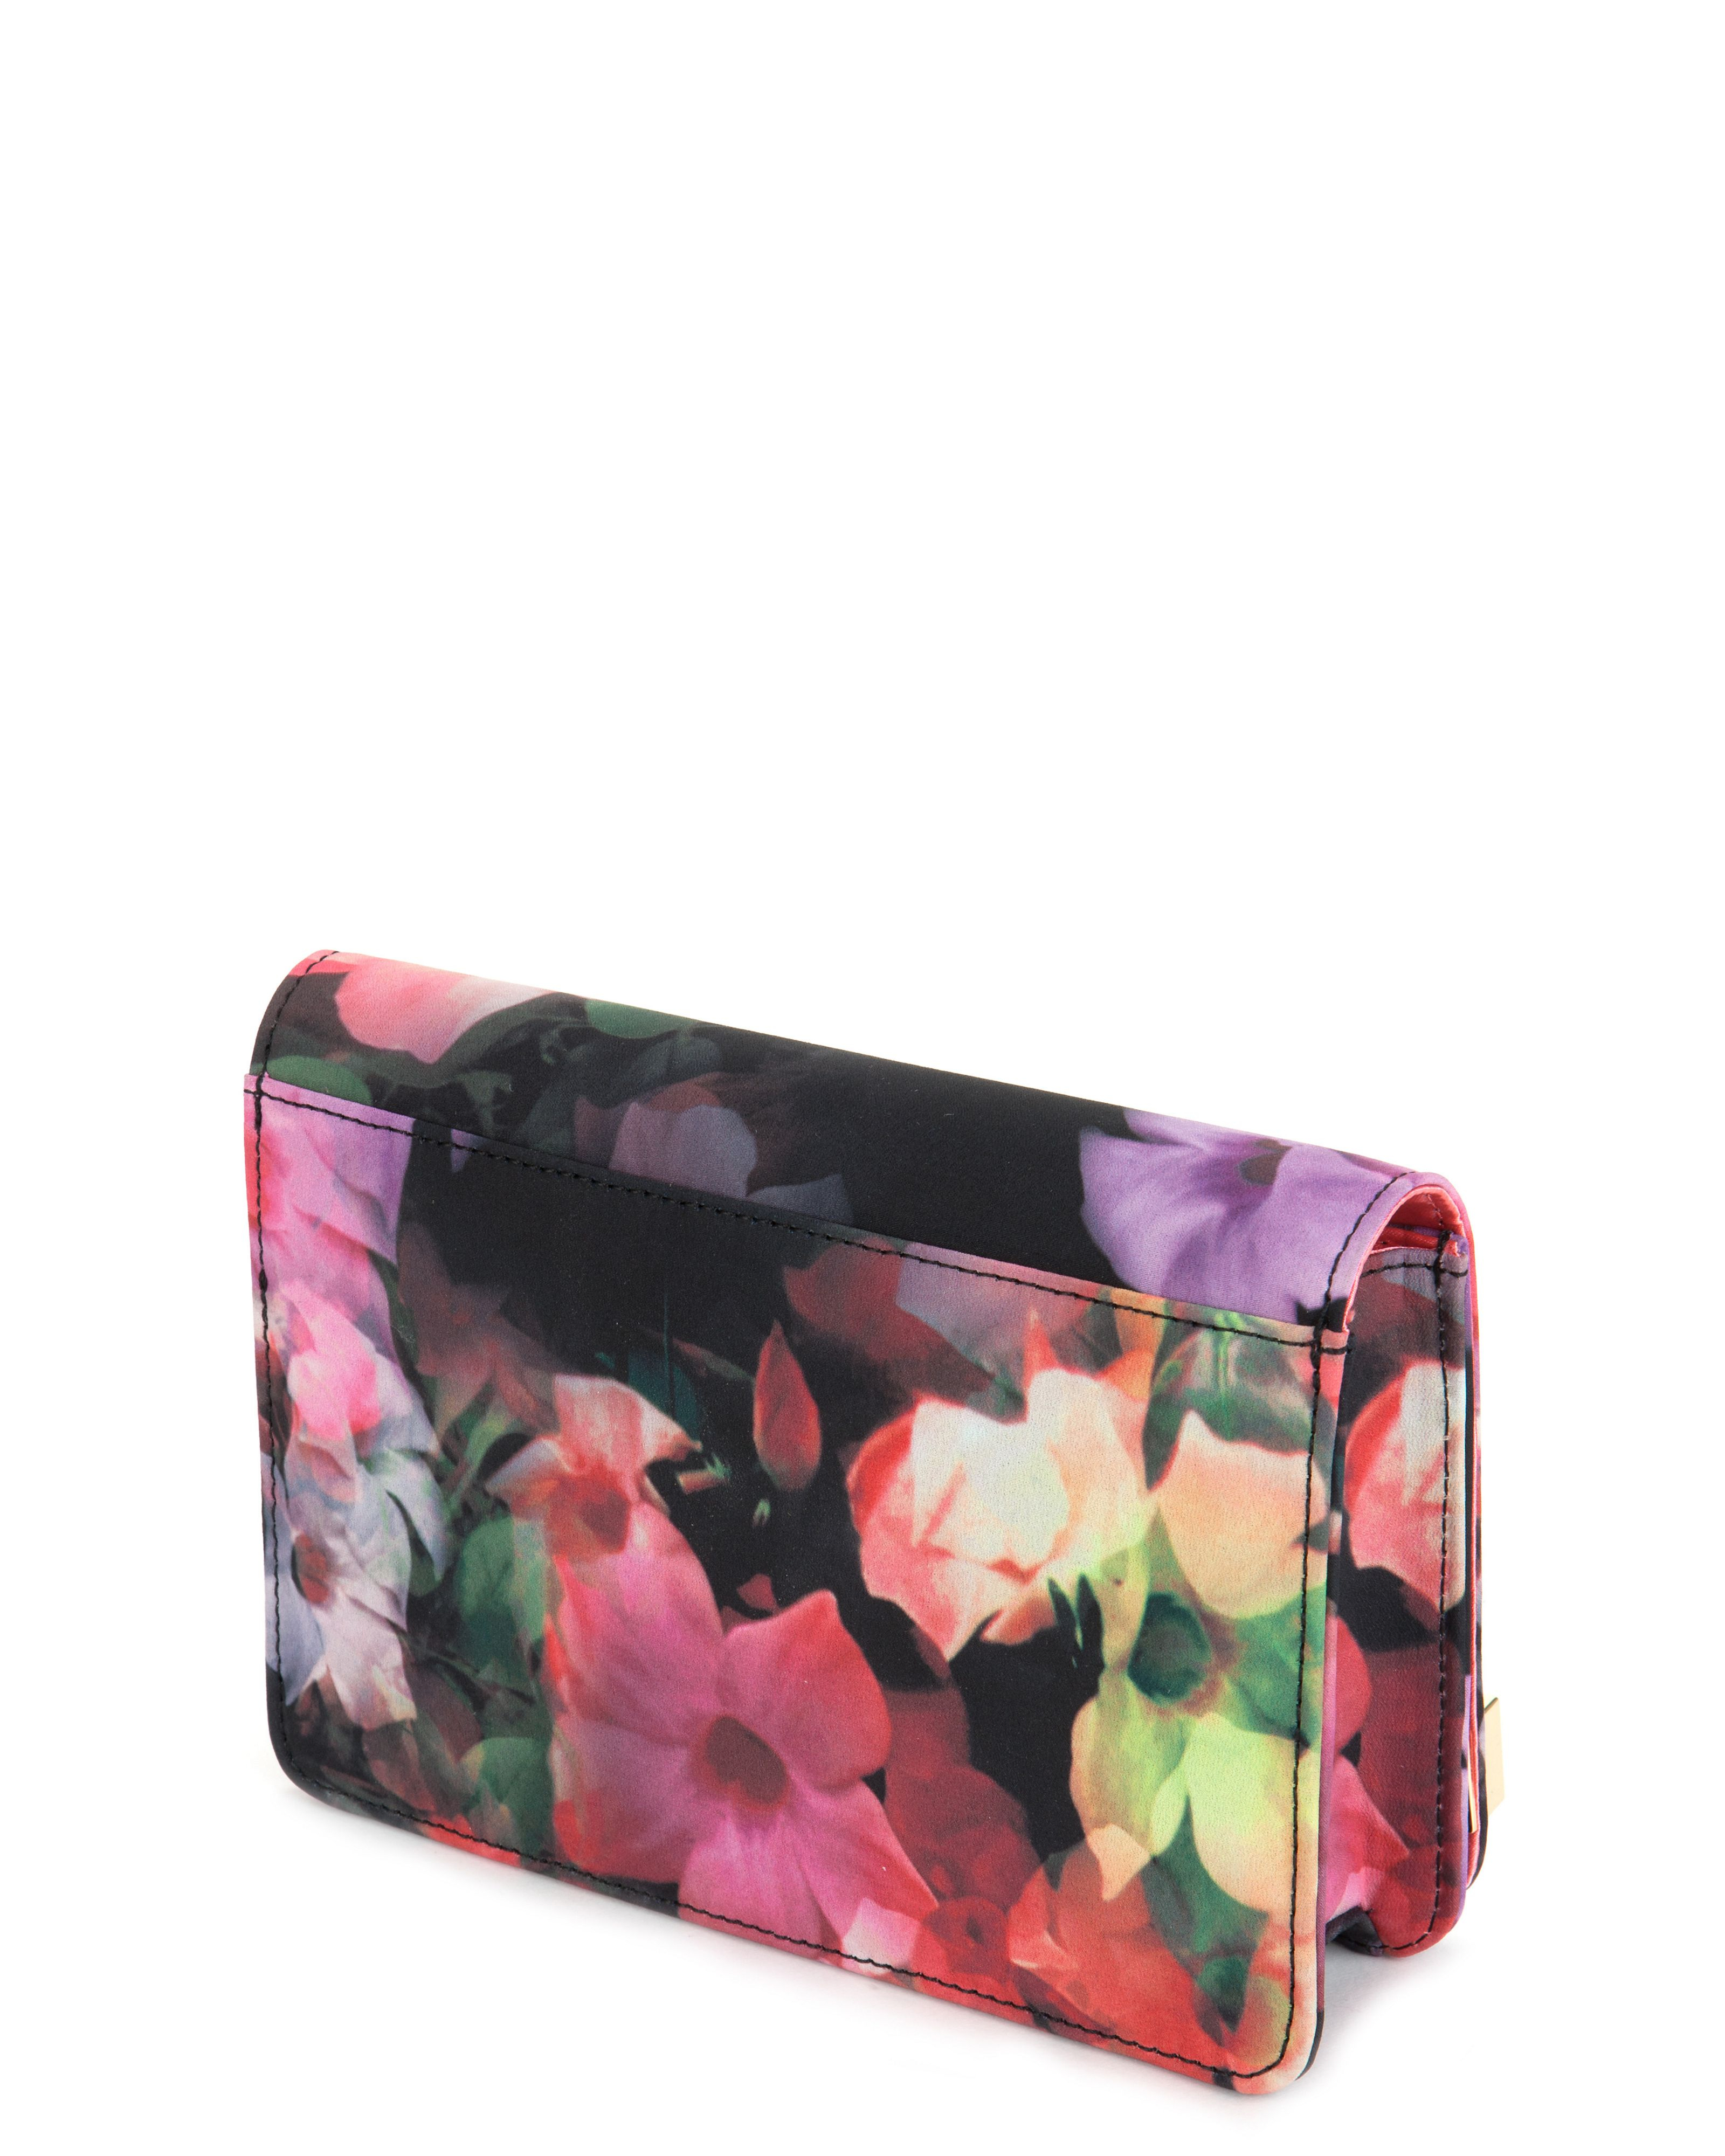 Lyst - Ted Baker Haily Cascading Floral Clutch Bag In Black